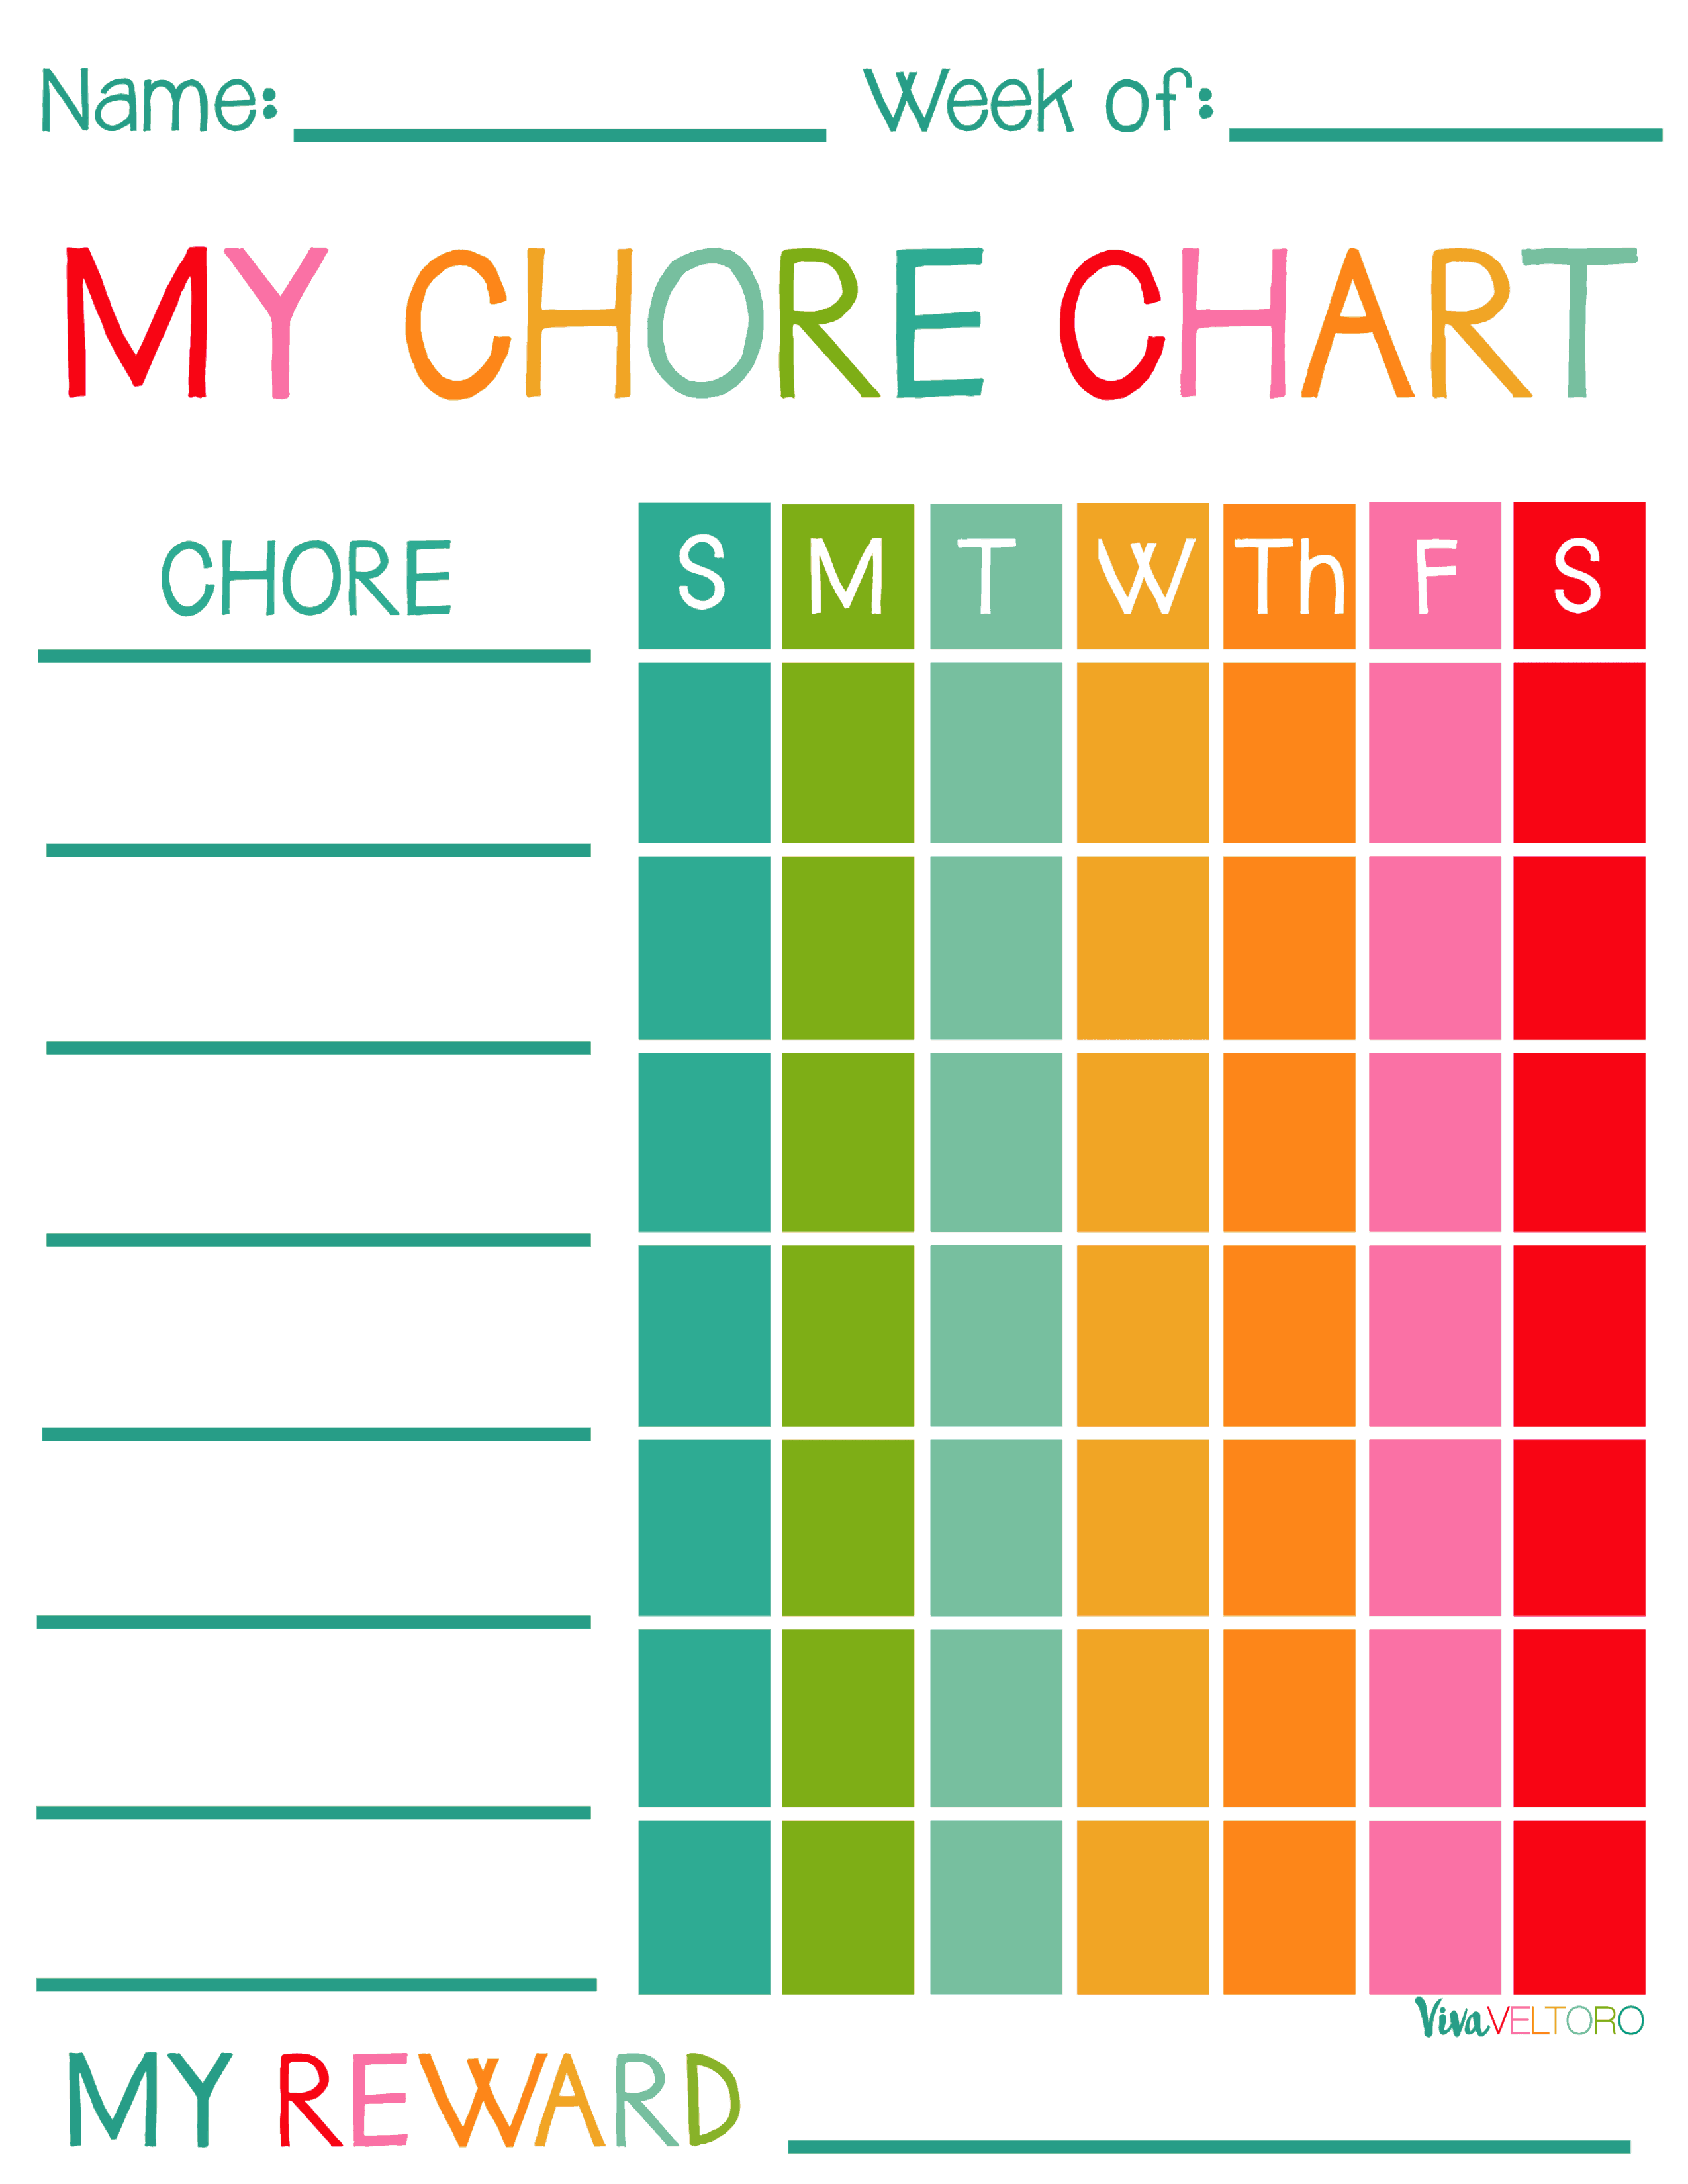 Free Printable Chore Charts For Kids Chore Chart Kids Free Printable Chore Charts Charts For Kids